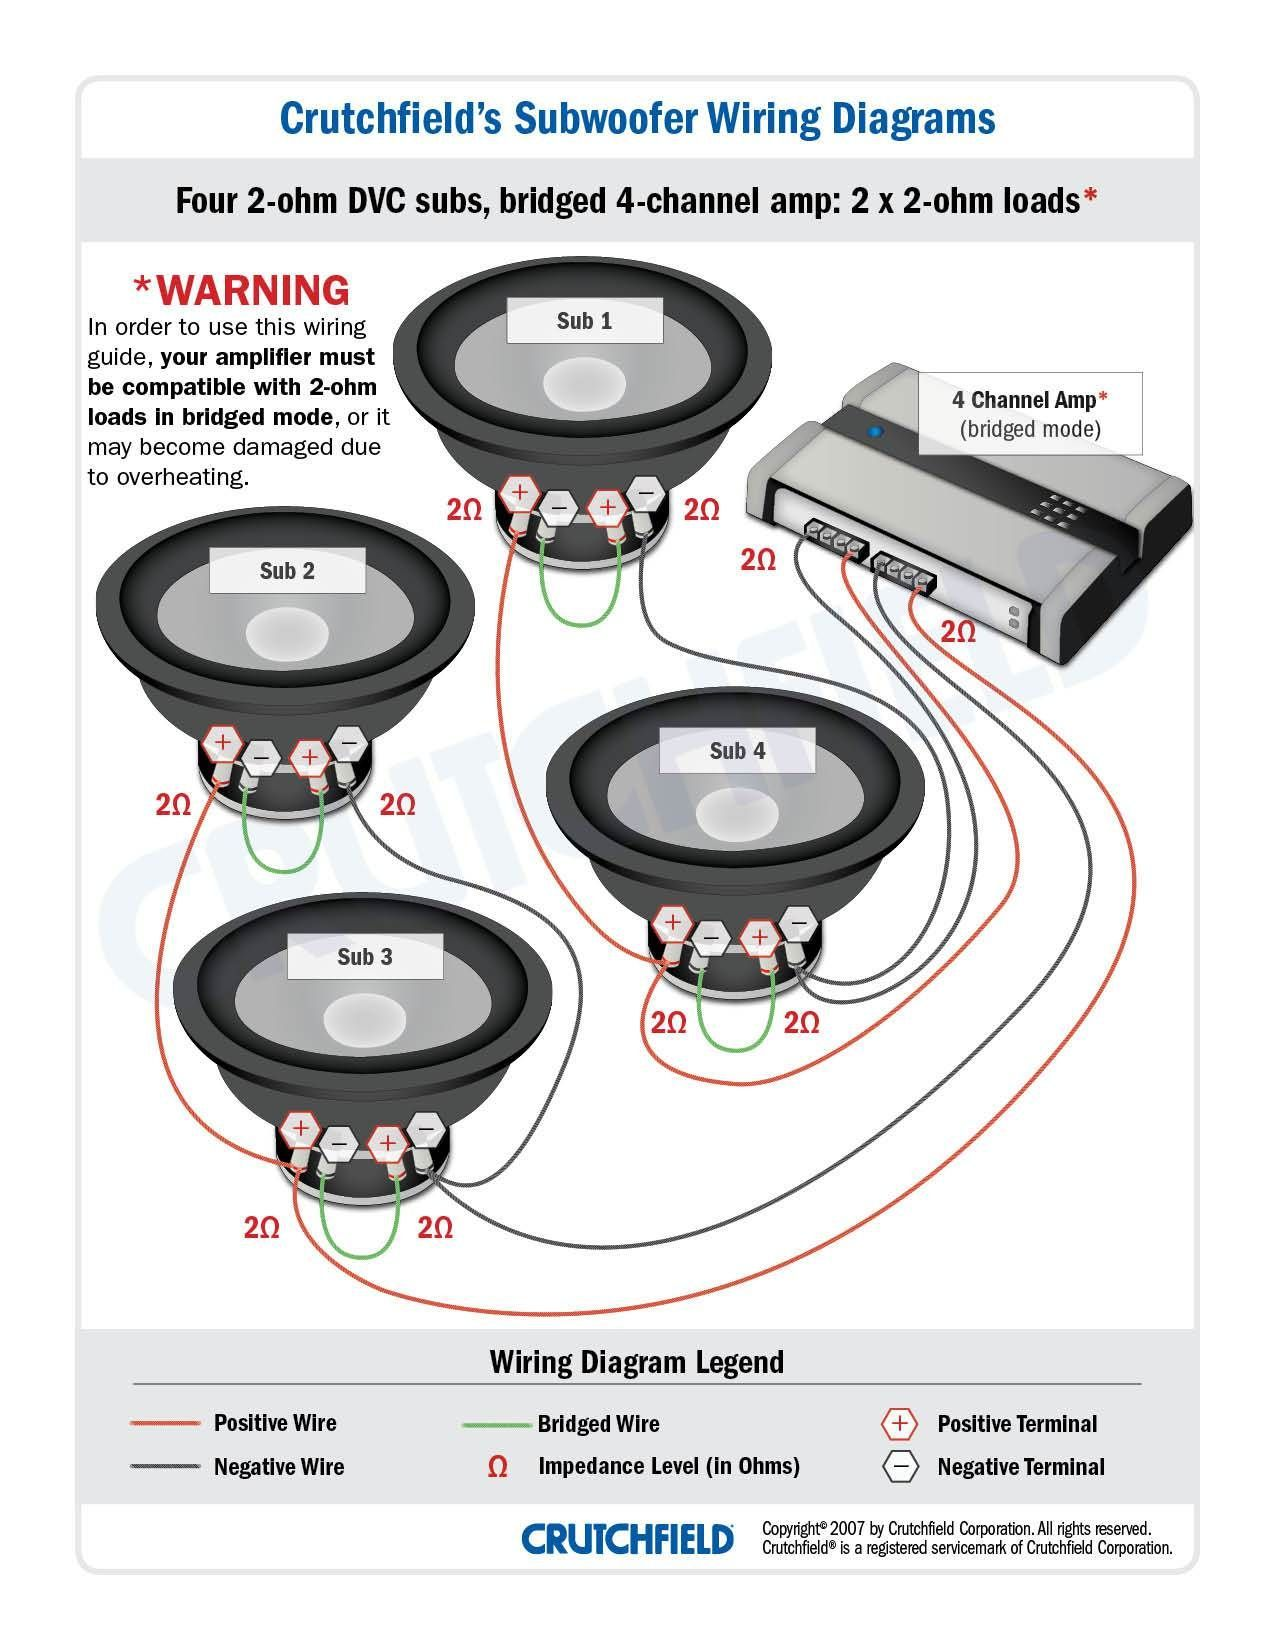 Subwoofer Wiring Diagrams Throughout 4 Ohm Dual Voice Coil Diagram Inside 1 Car Sounds Subwoofer Box Des Subwoofer Wiring Car Speaker Box Car Audio Subwoofers